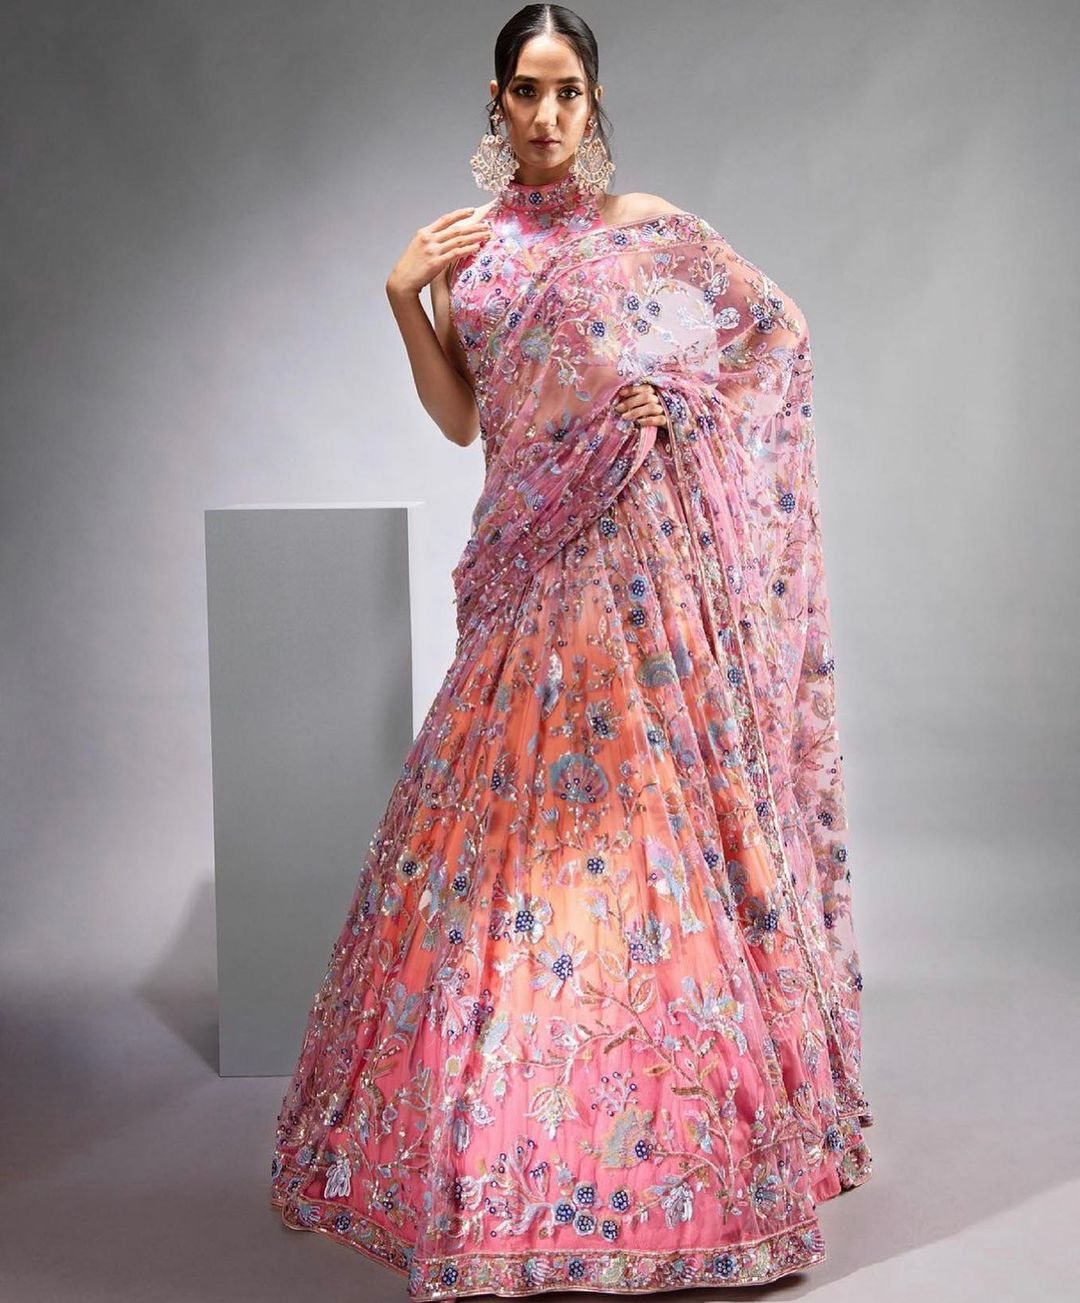 Valley of flowers by sv . Stunning bridal lehenga with valley of flowers embroidery work.   2021-08-03